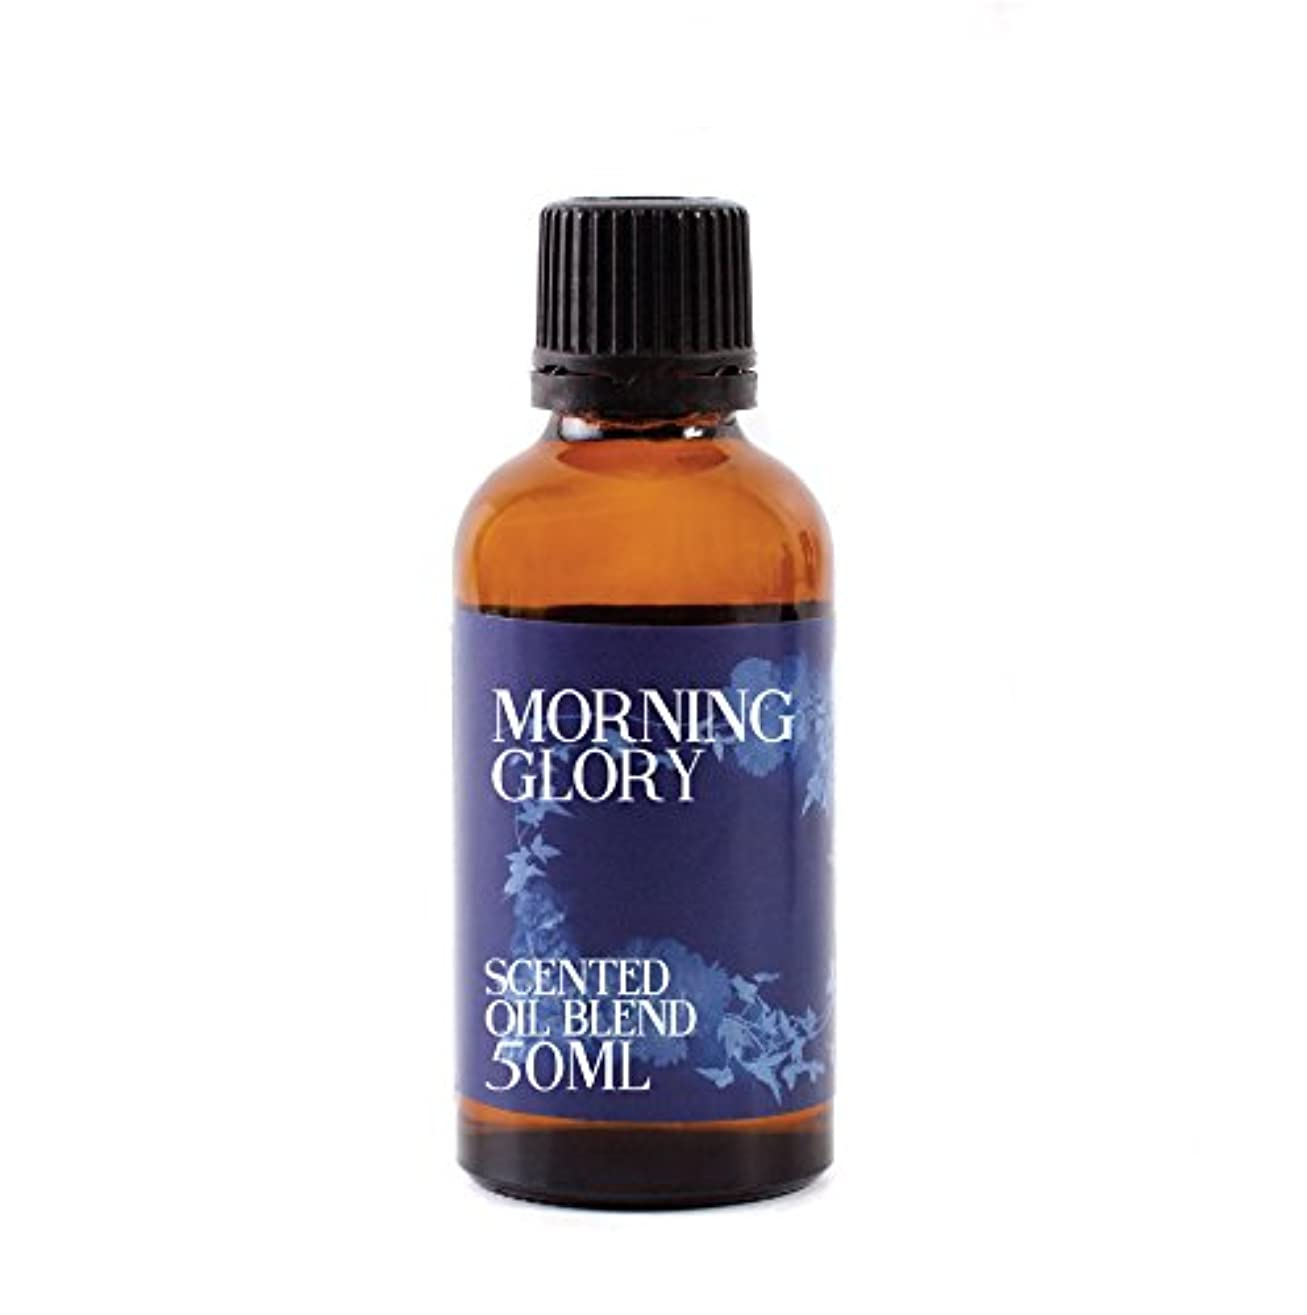 Mystic Moments   Morning Glory - Scented Oil Blend - 50ml